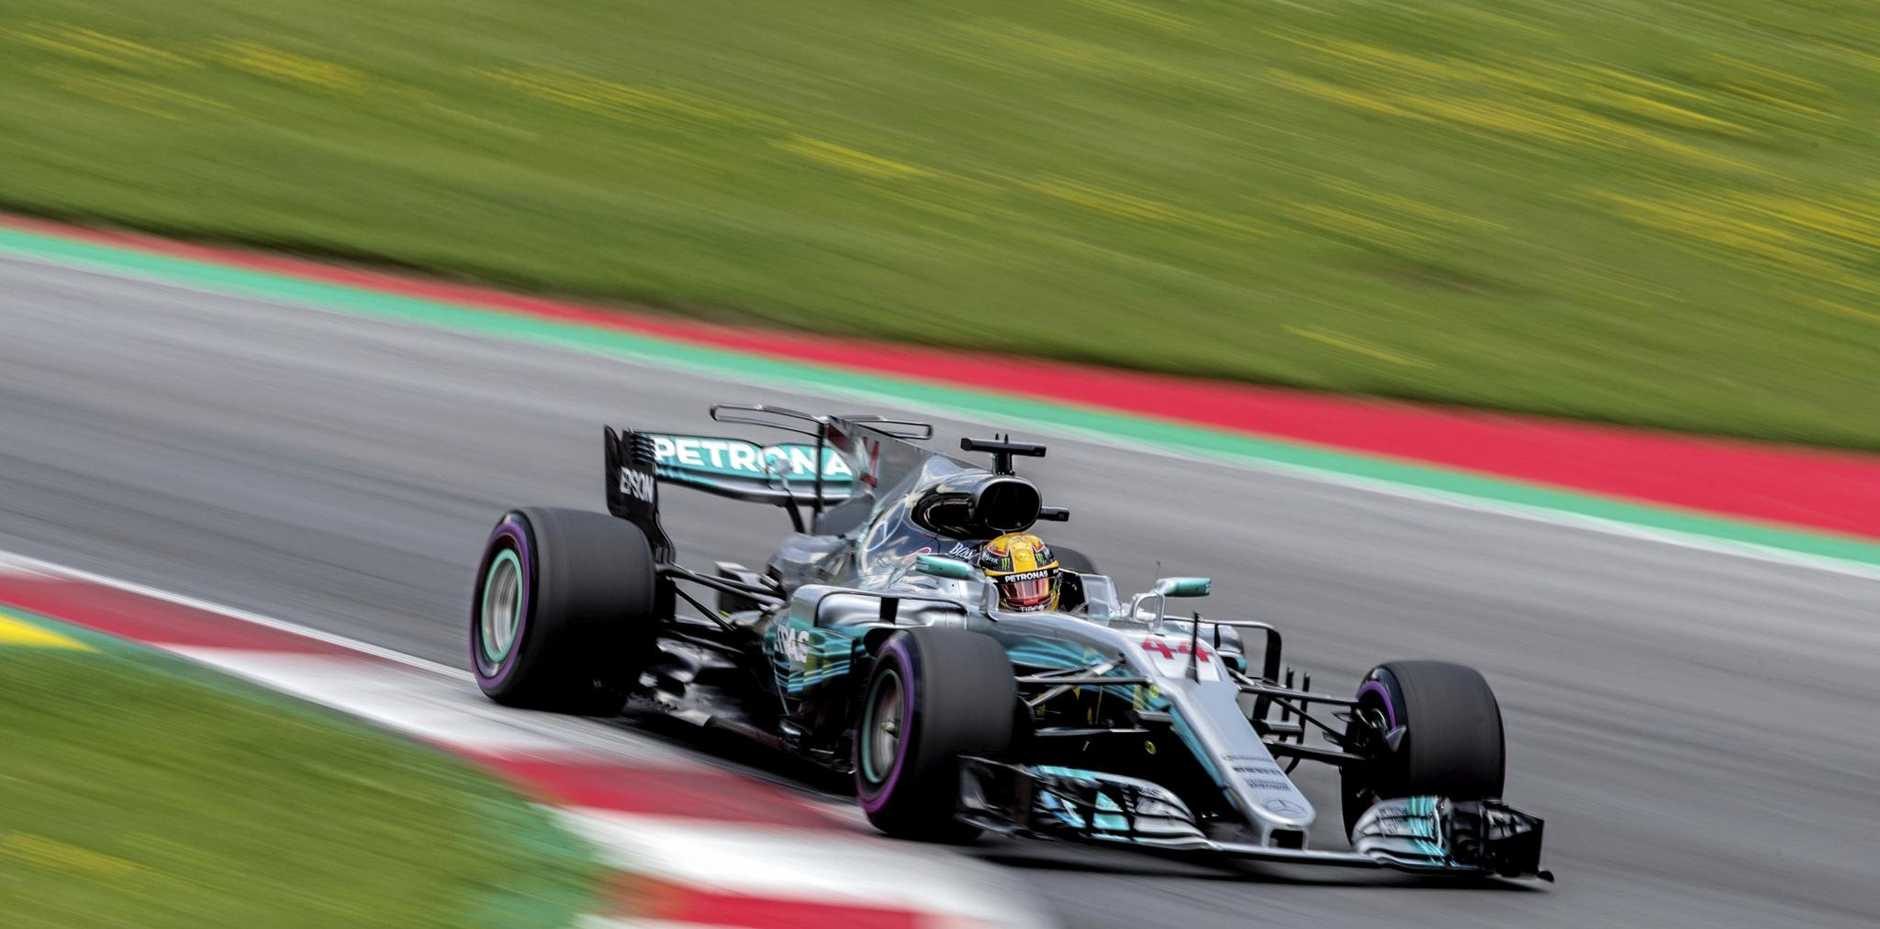 British Formula 1 driver Lewis Hamilton of Mercedes in action during the second practice session in Austria.